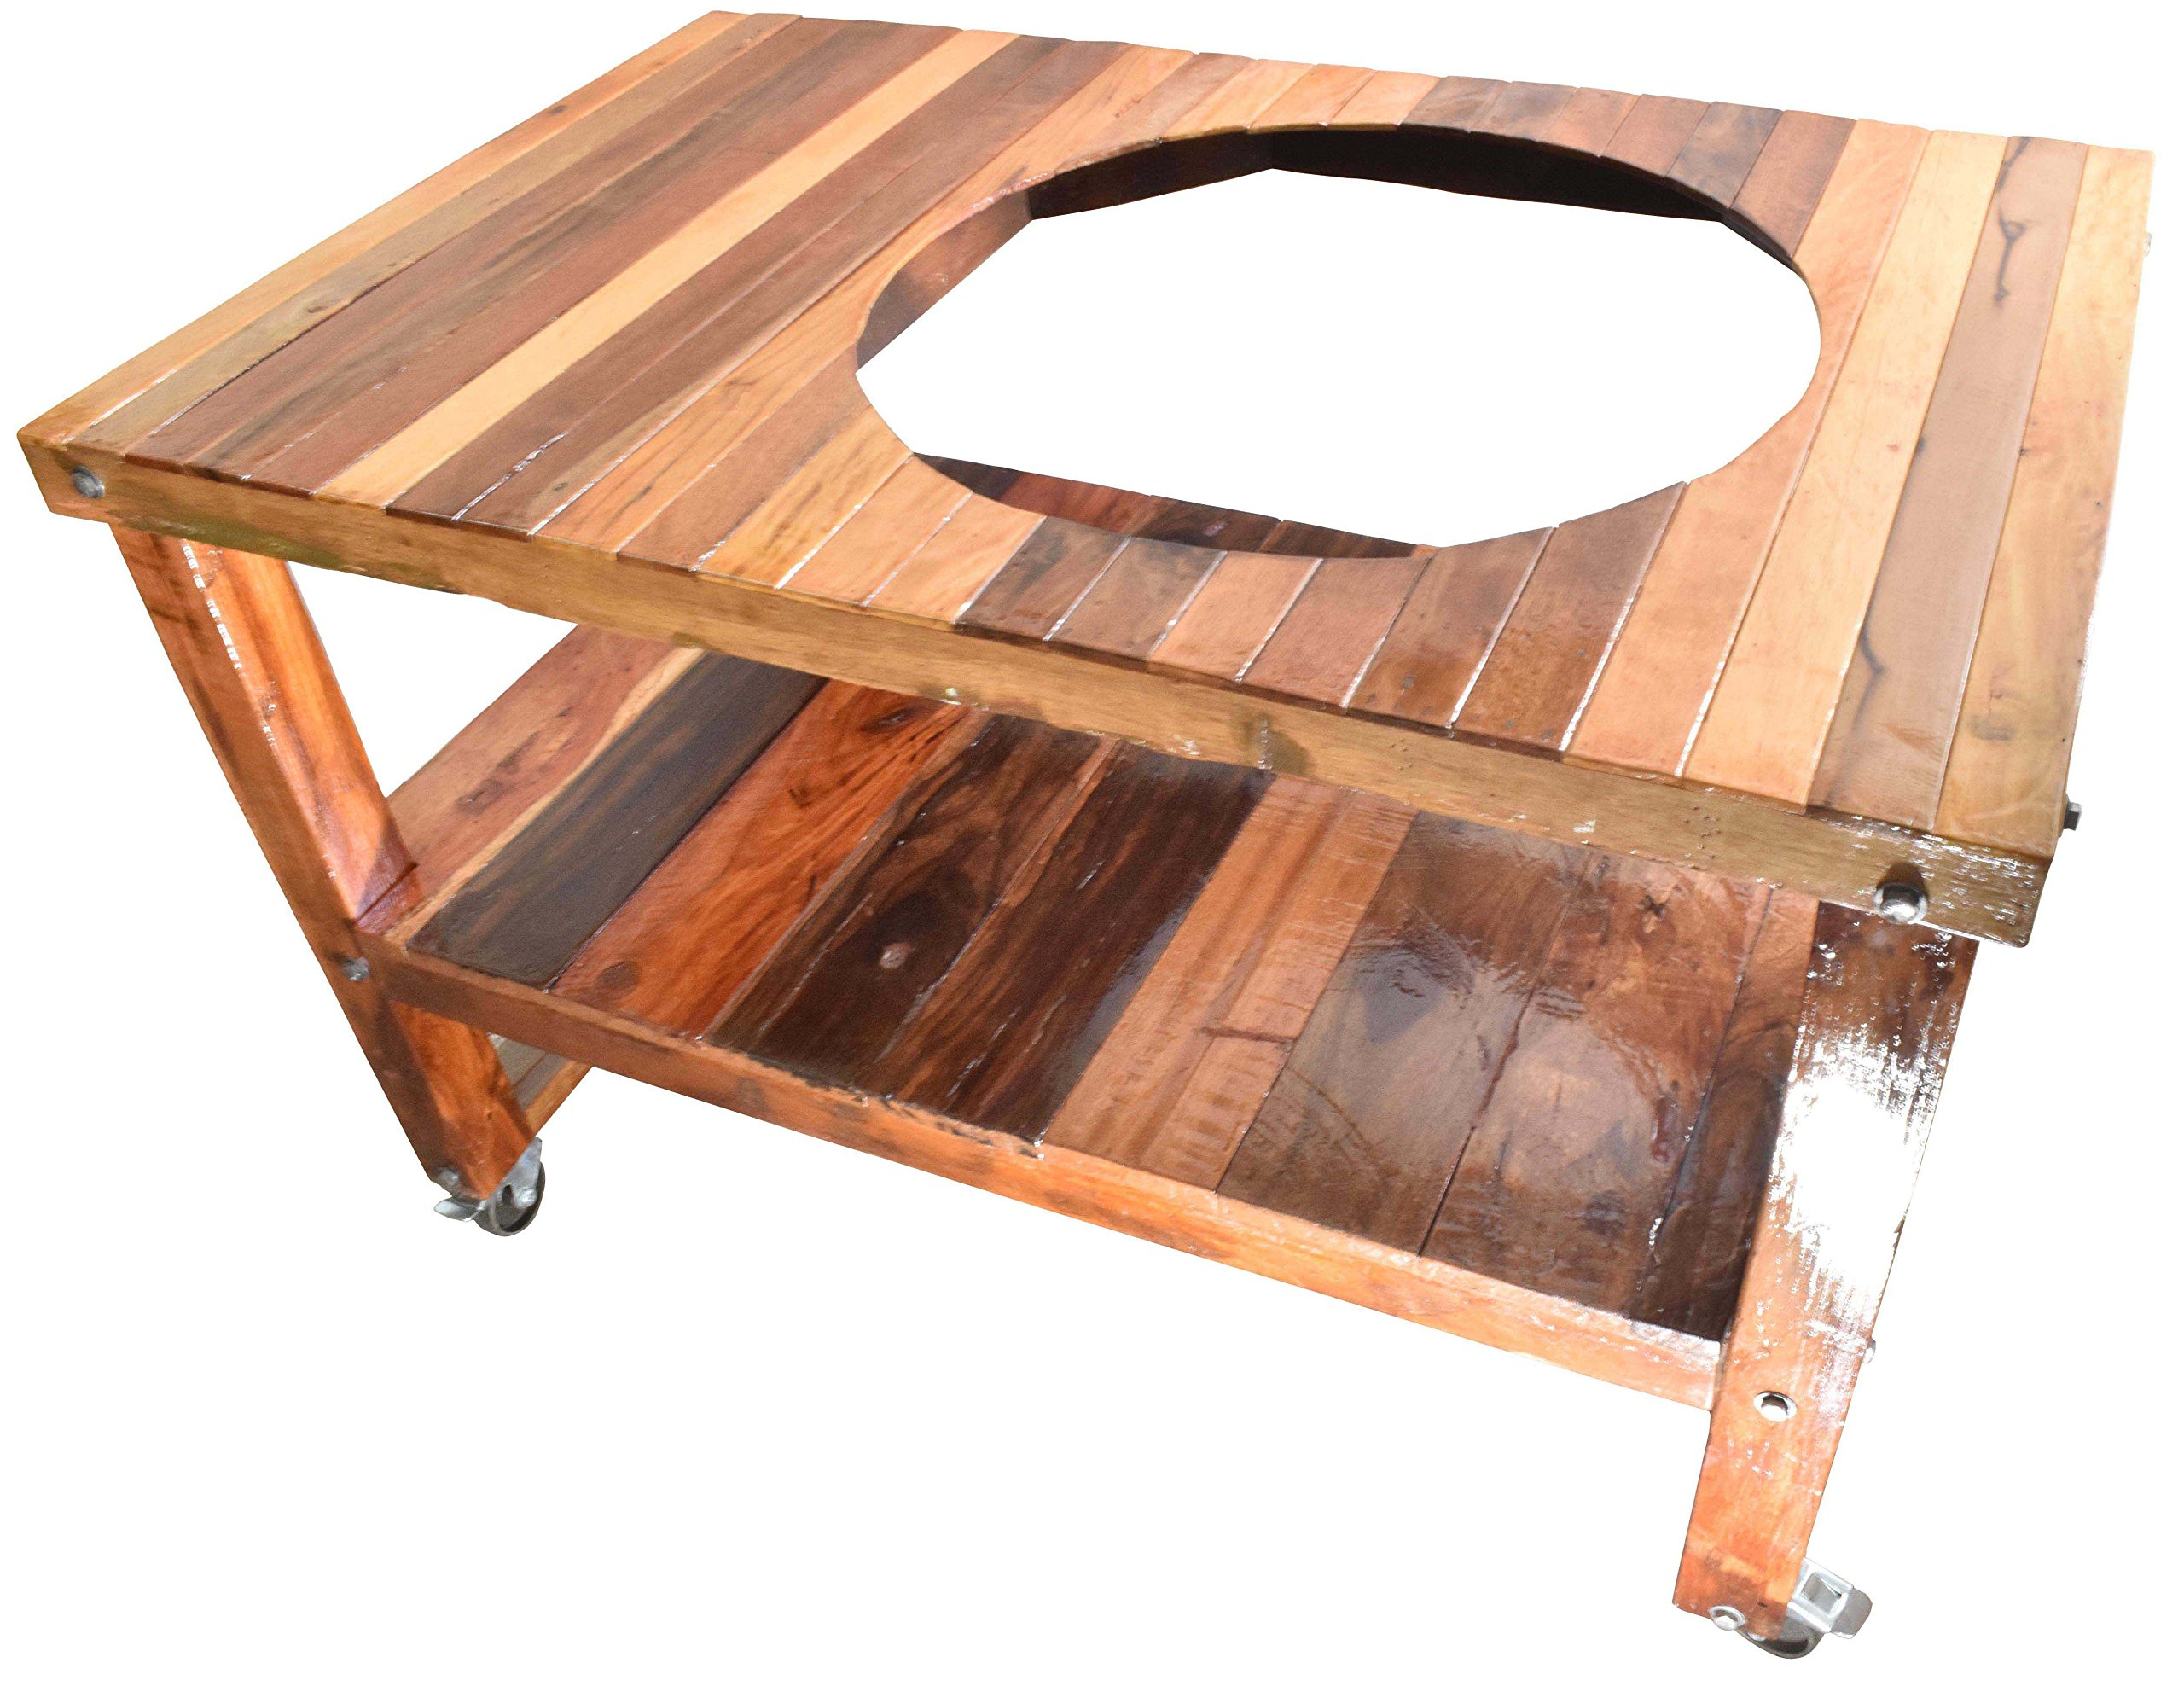 Barbecue Hardwood Tables ''Offset Hole'' (21 inch, Indoor, Outdoor, Big Green Egg, Fit for Kamado Joe, Party, BBQs and Everyday Use)